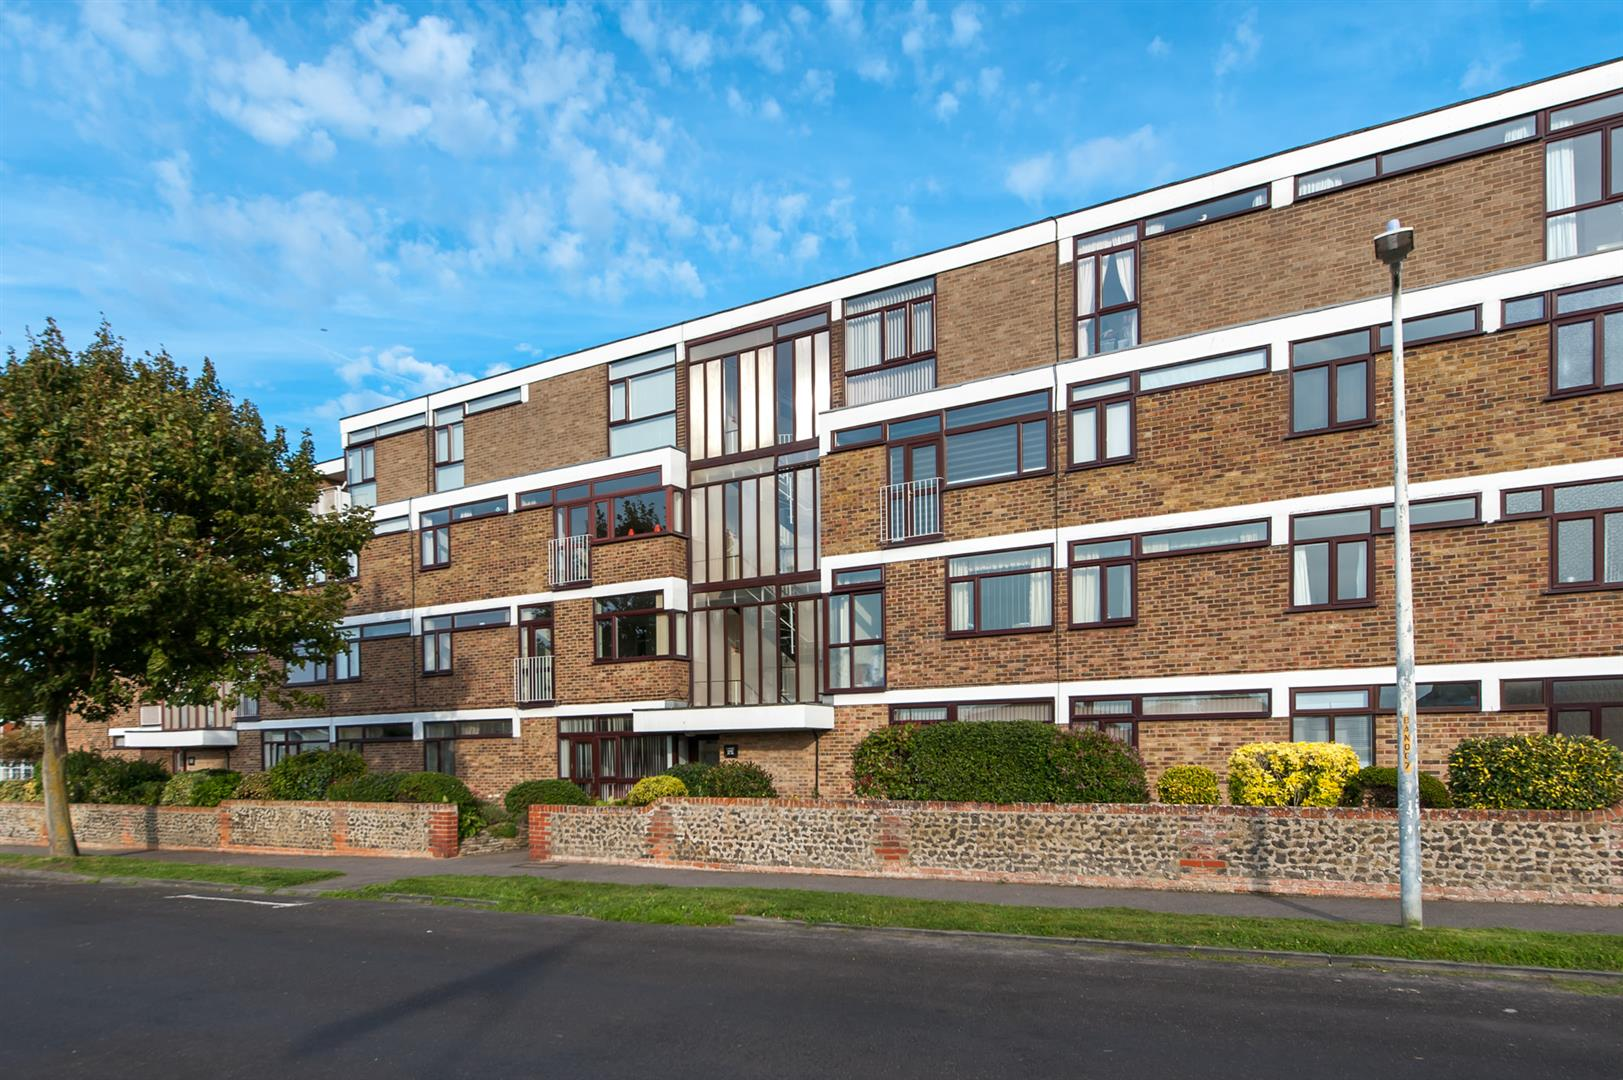 2 Bedrooms Apartment Flat for sale in Beach Avenue, Birchington